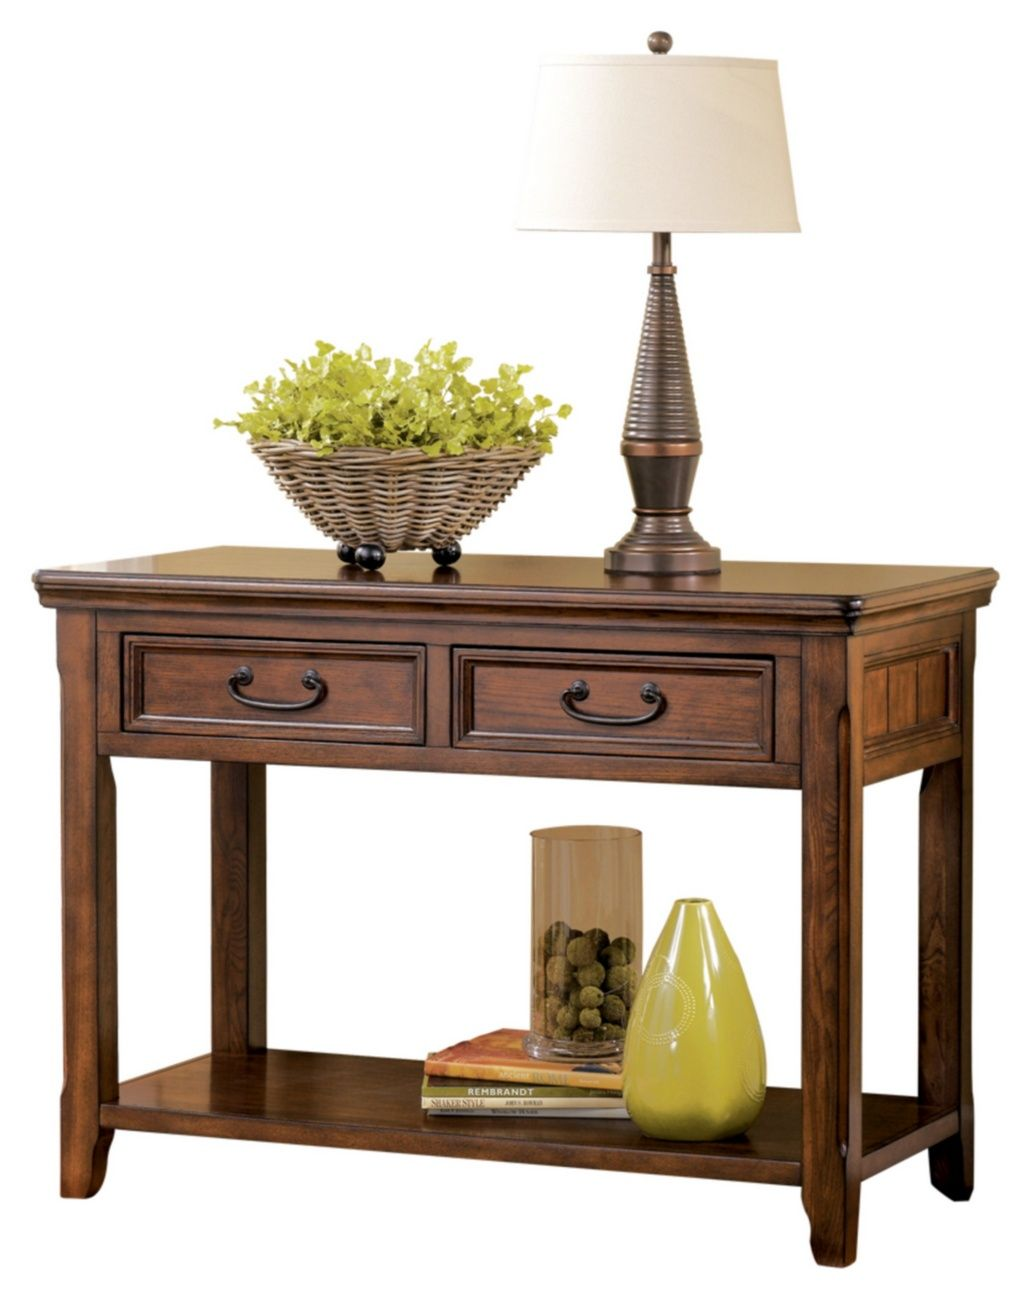 Signature Design Woodboro Sofa Table Ashley Furniture T478 4 Diy Sofa Table Sofa Tables Console Table